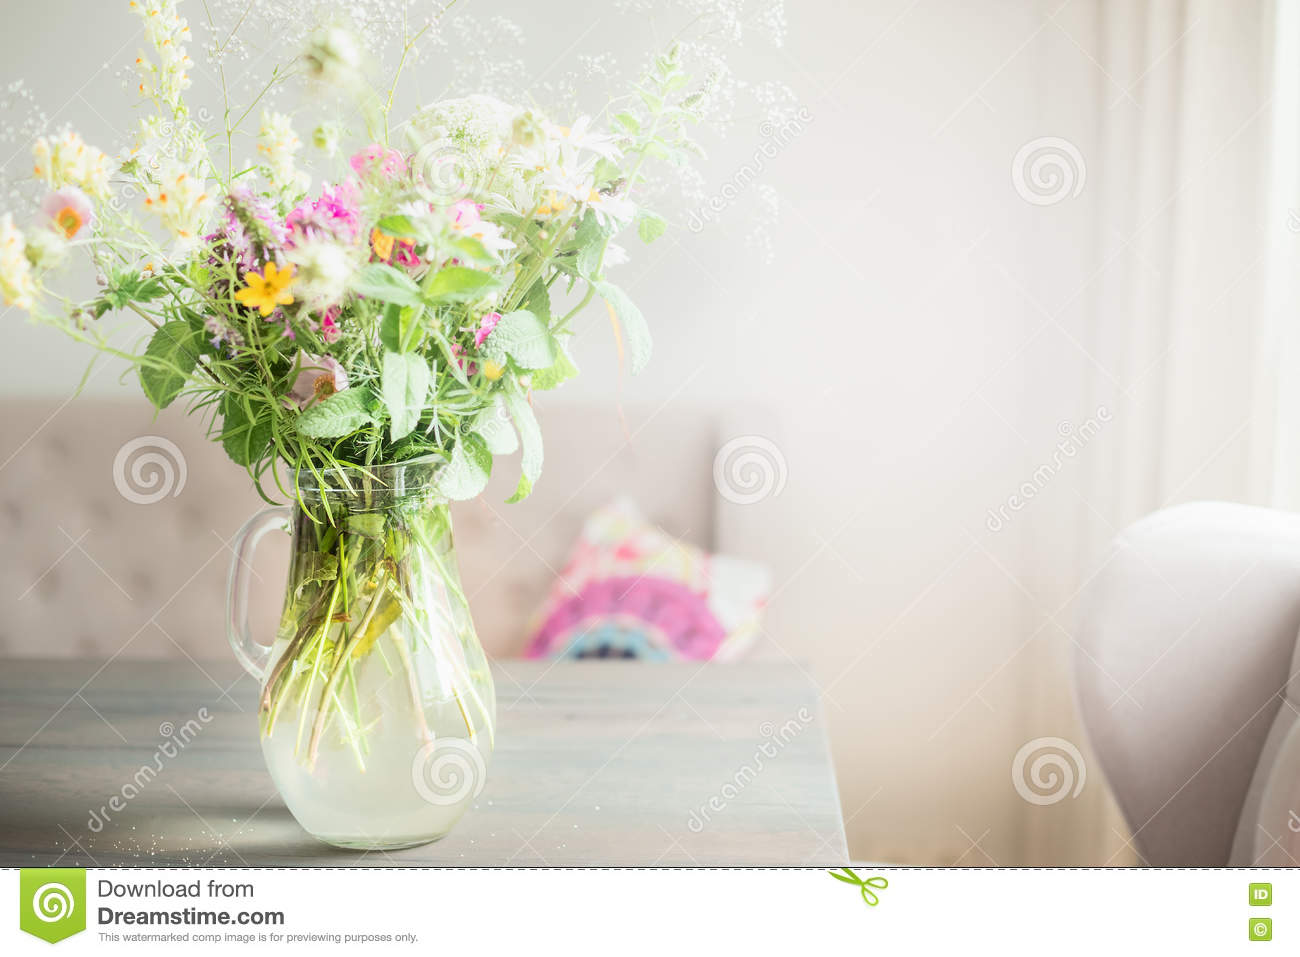 Living Room Vase lovely wild flowers bunch in glass vase on table in light living